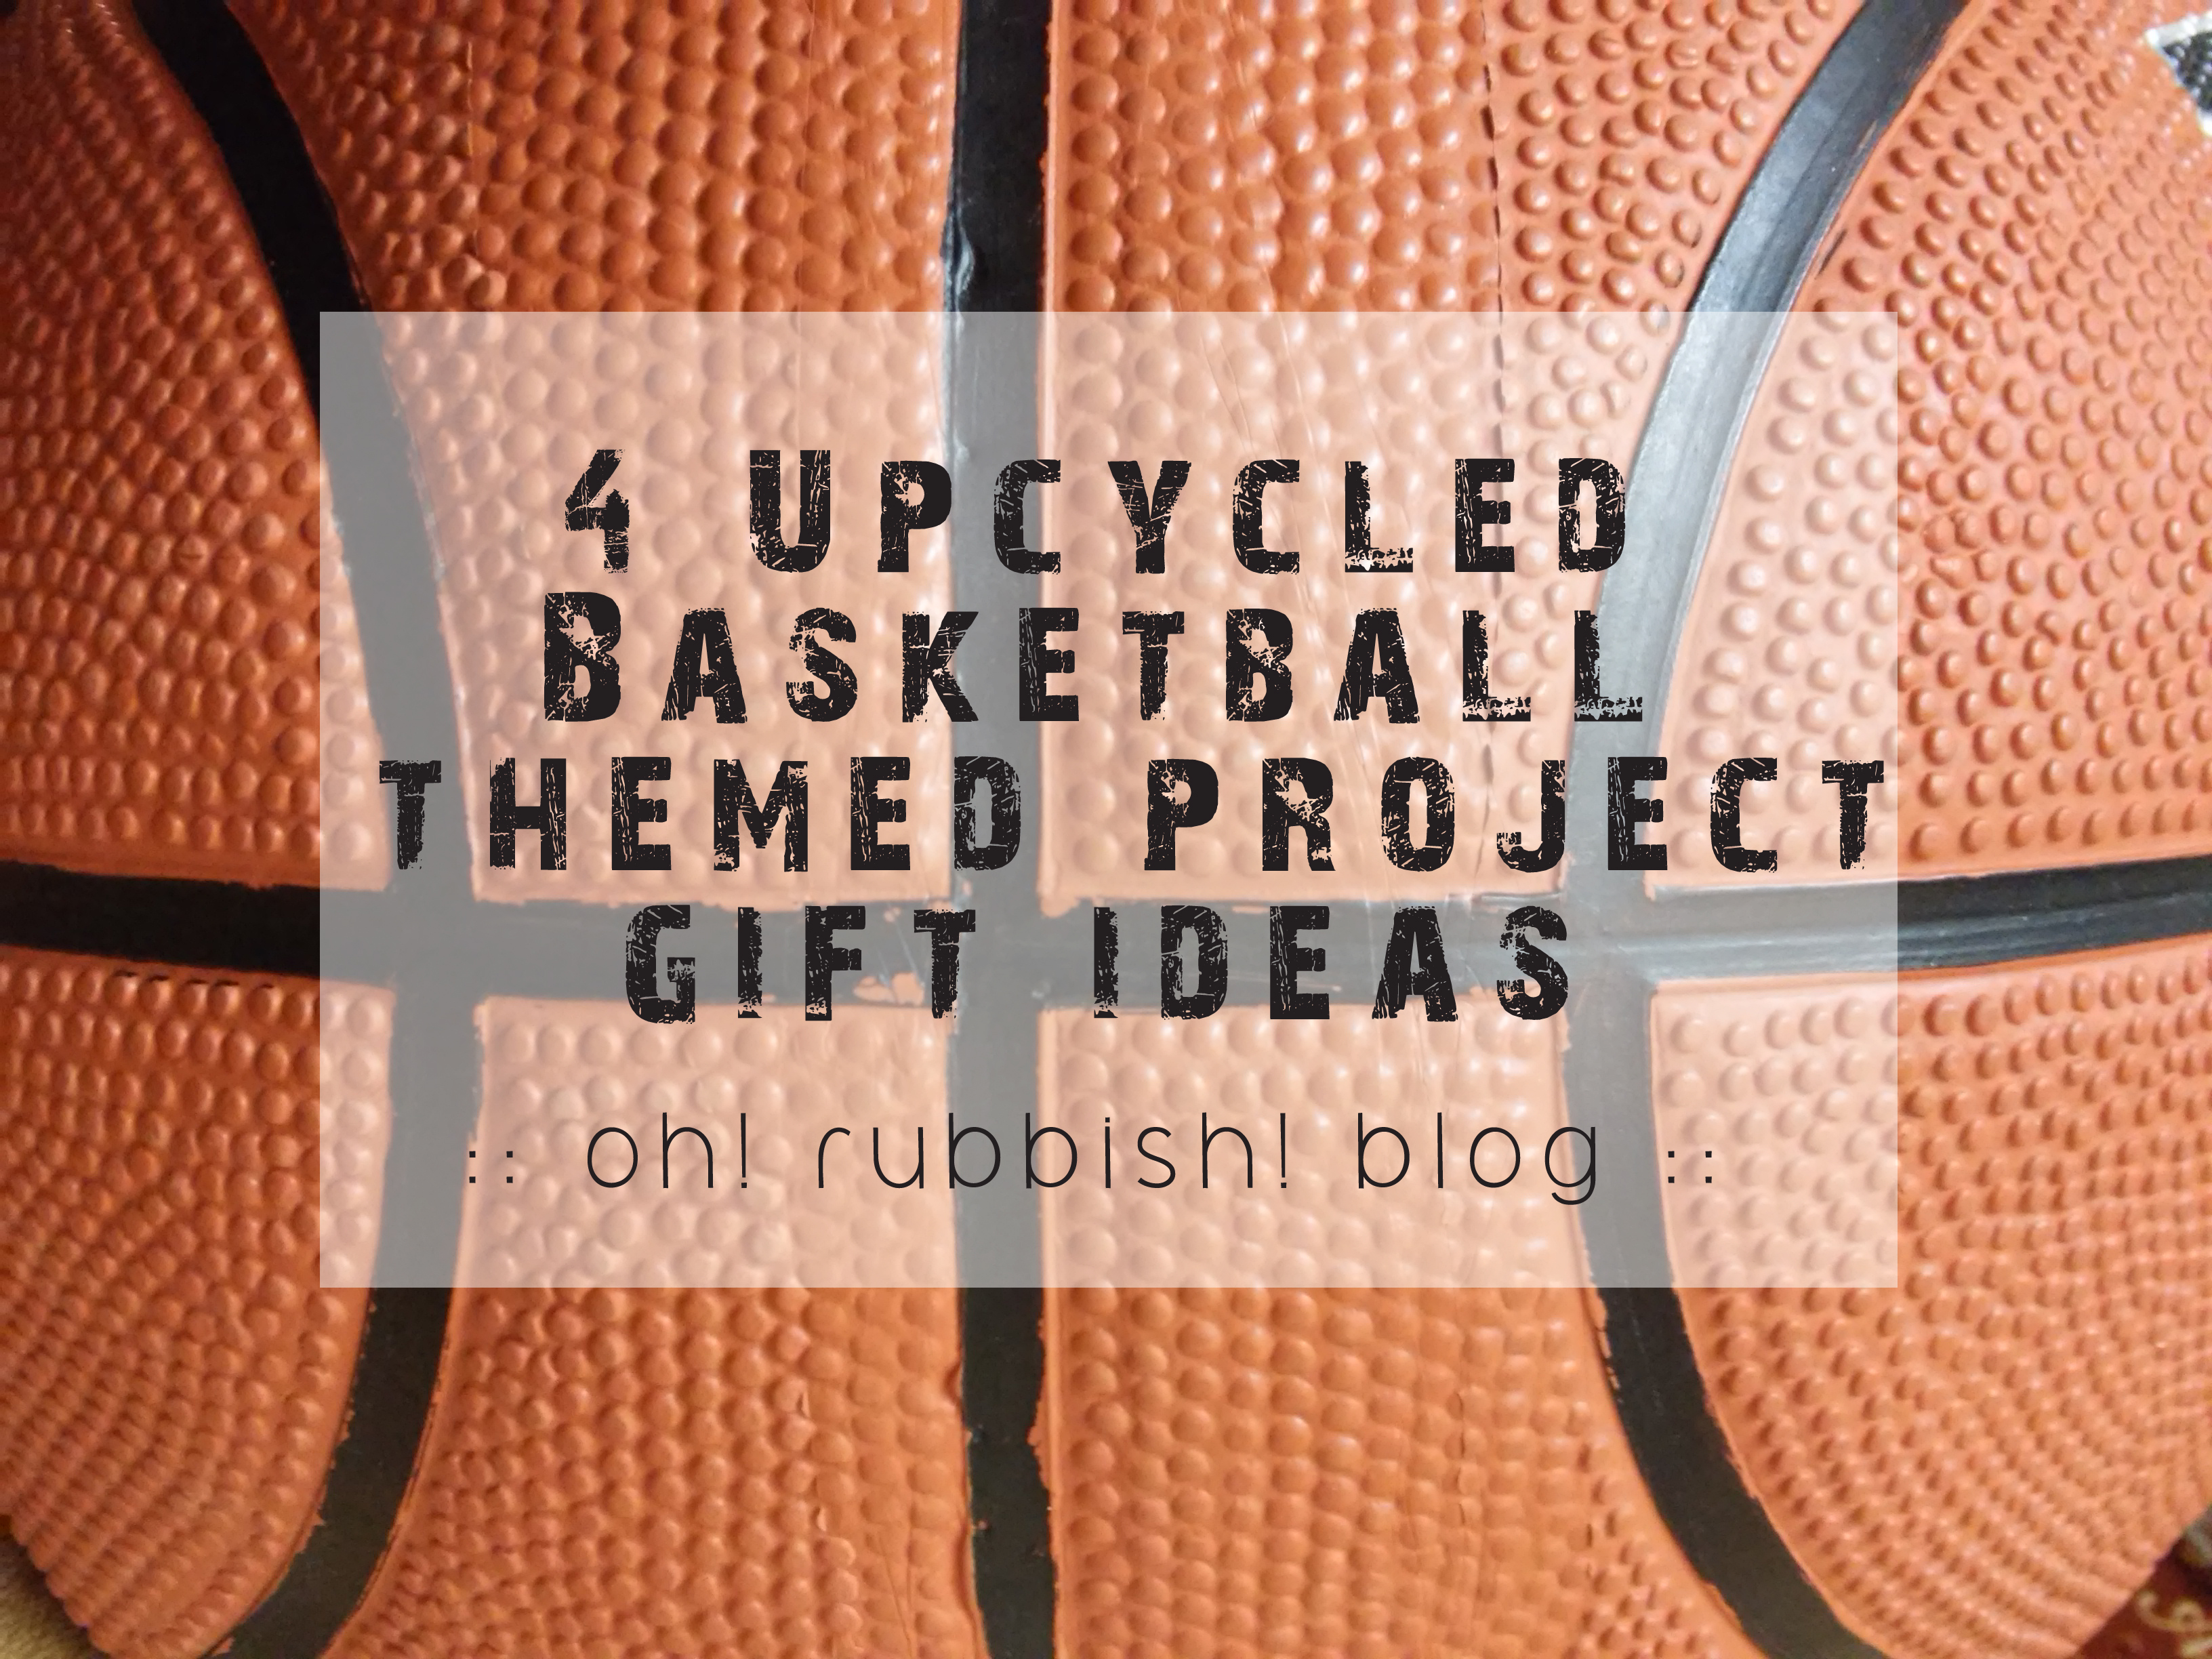 Graduation Table Decoration Ideas ... Basketball Gift Ideas :: Fathers Day Gift Ideas by oh! rubbish! blog